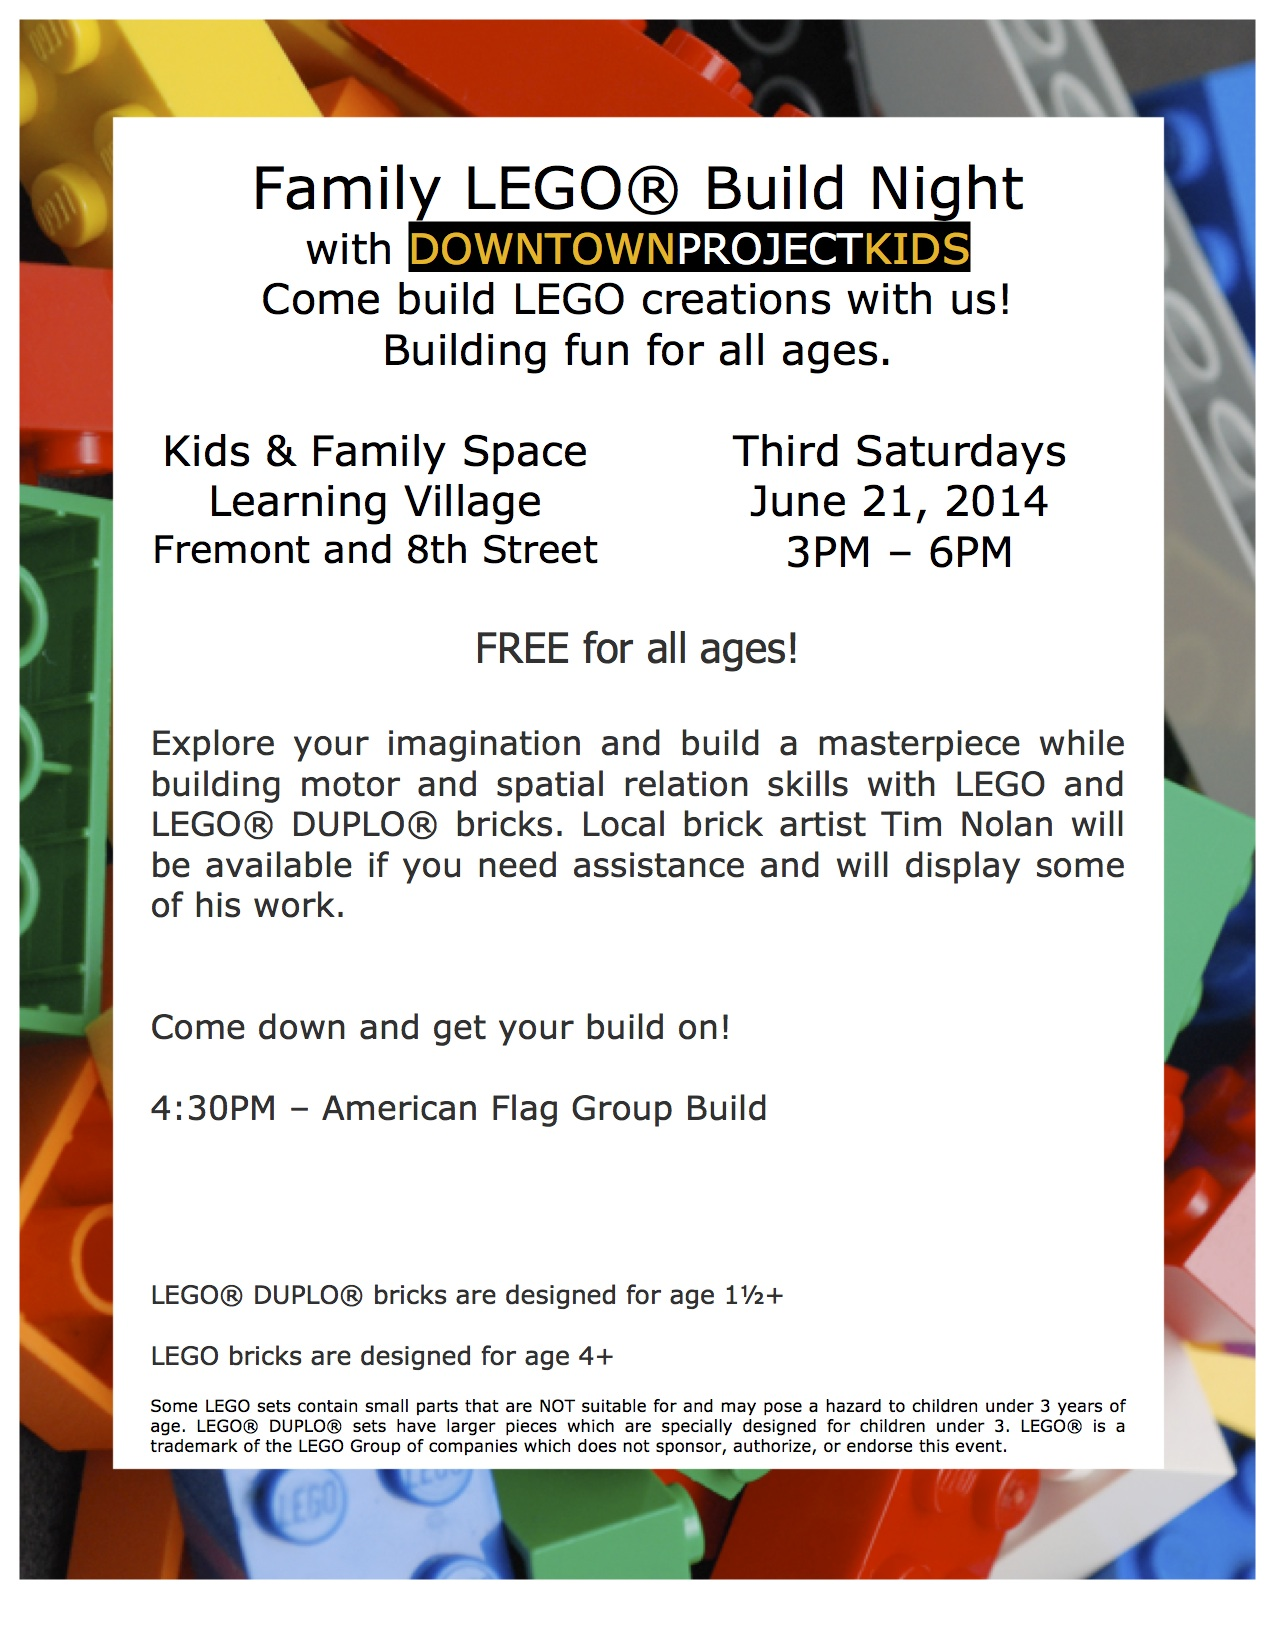 Family LEGO速 Build Night 6/21/14